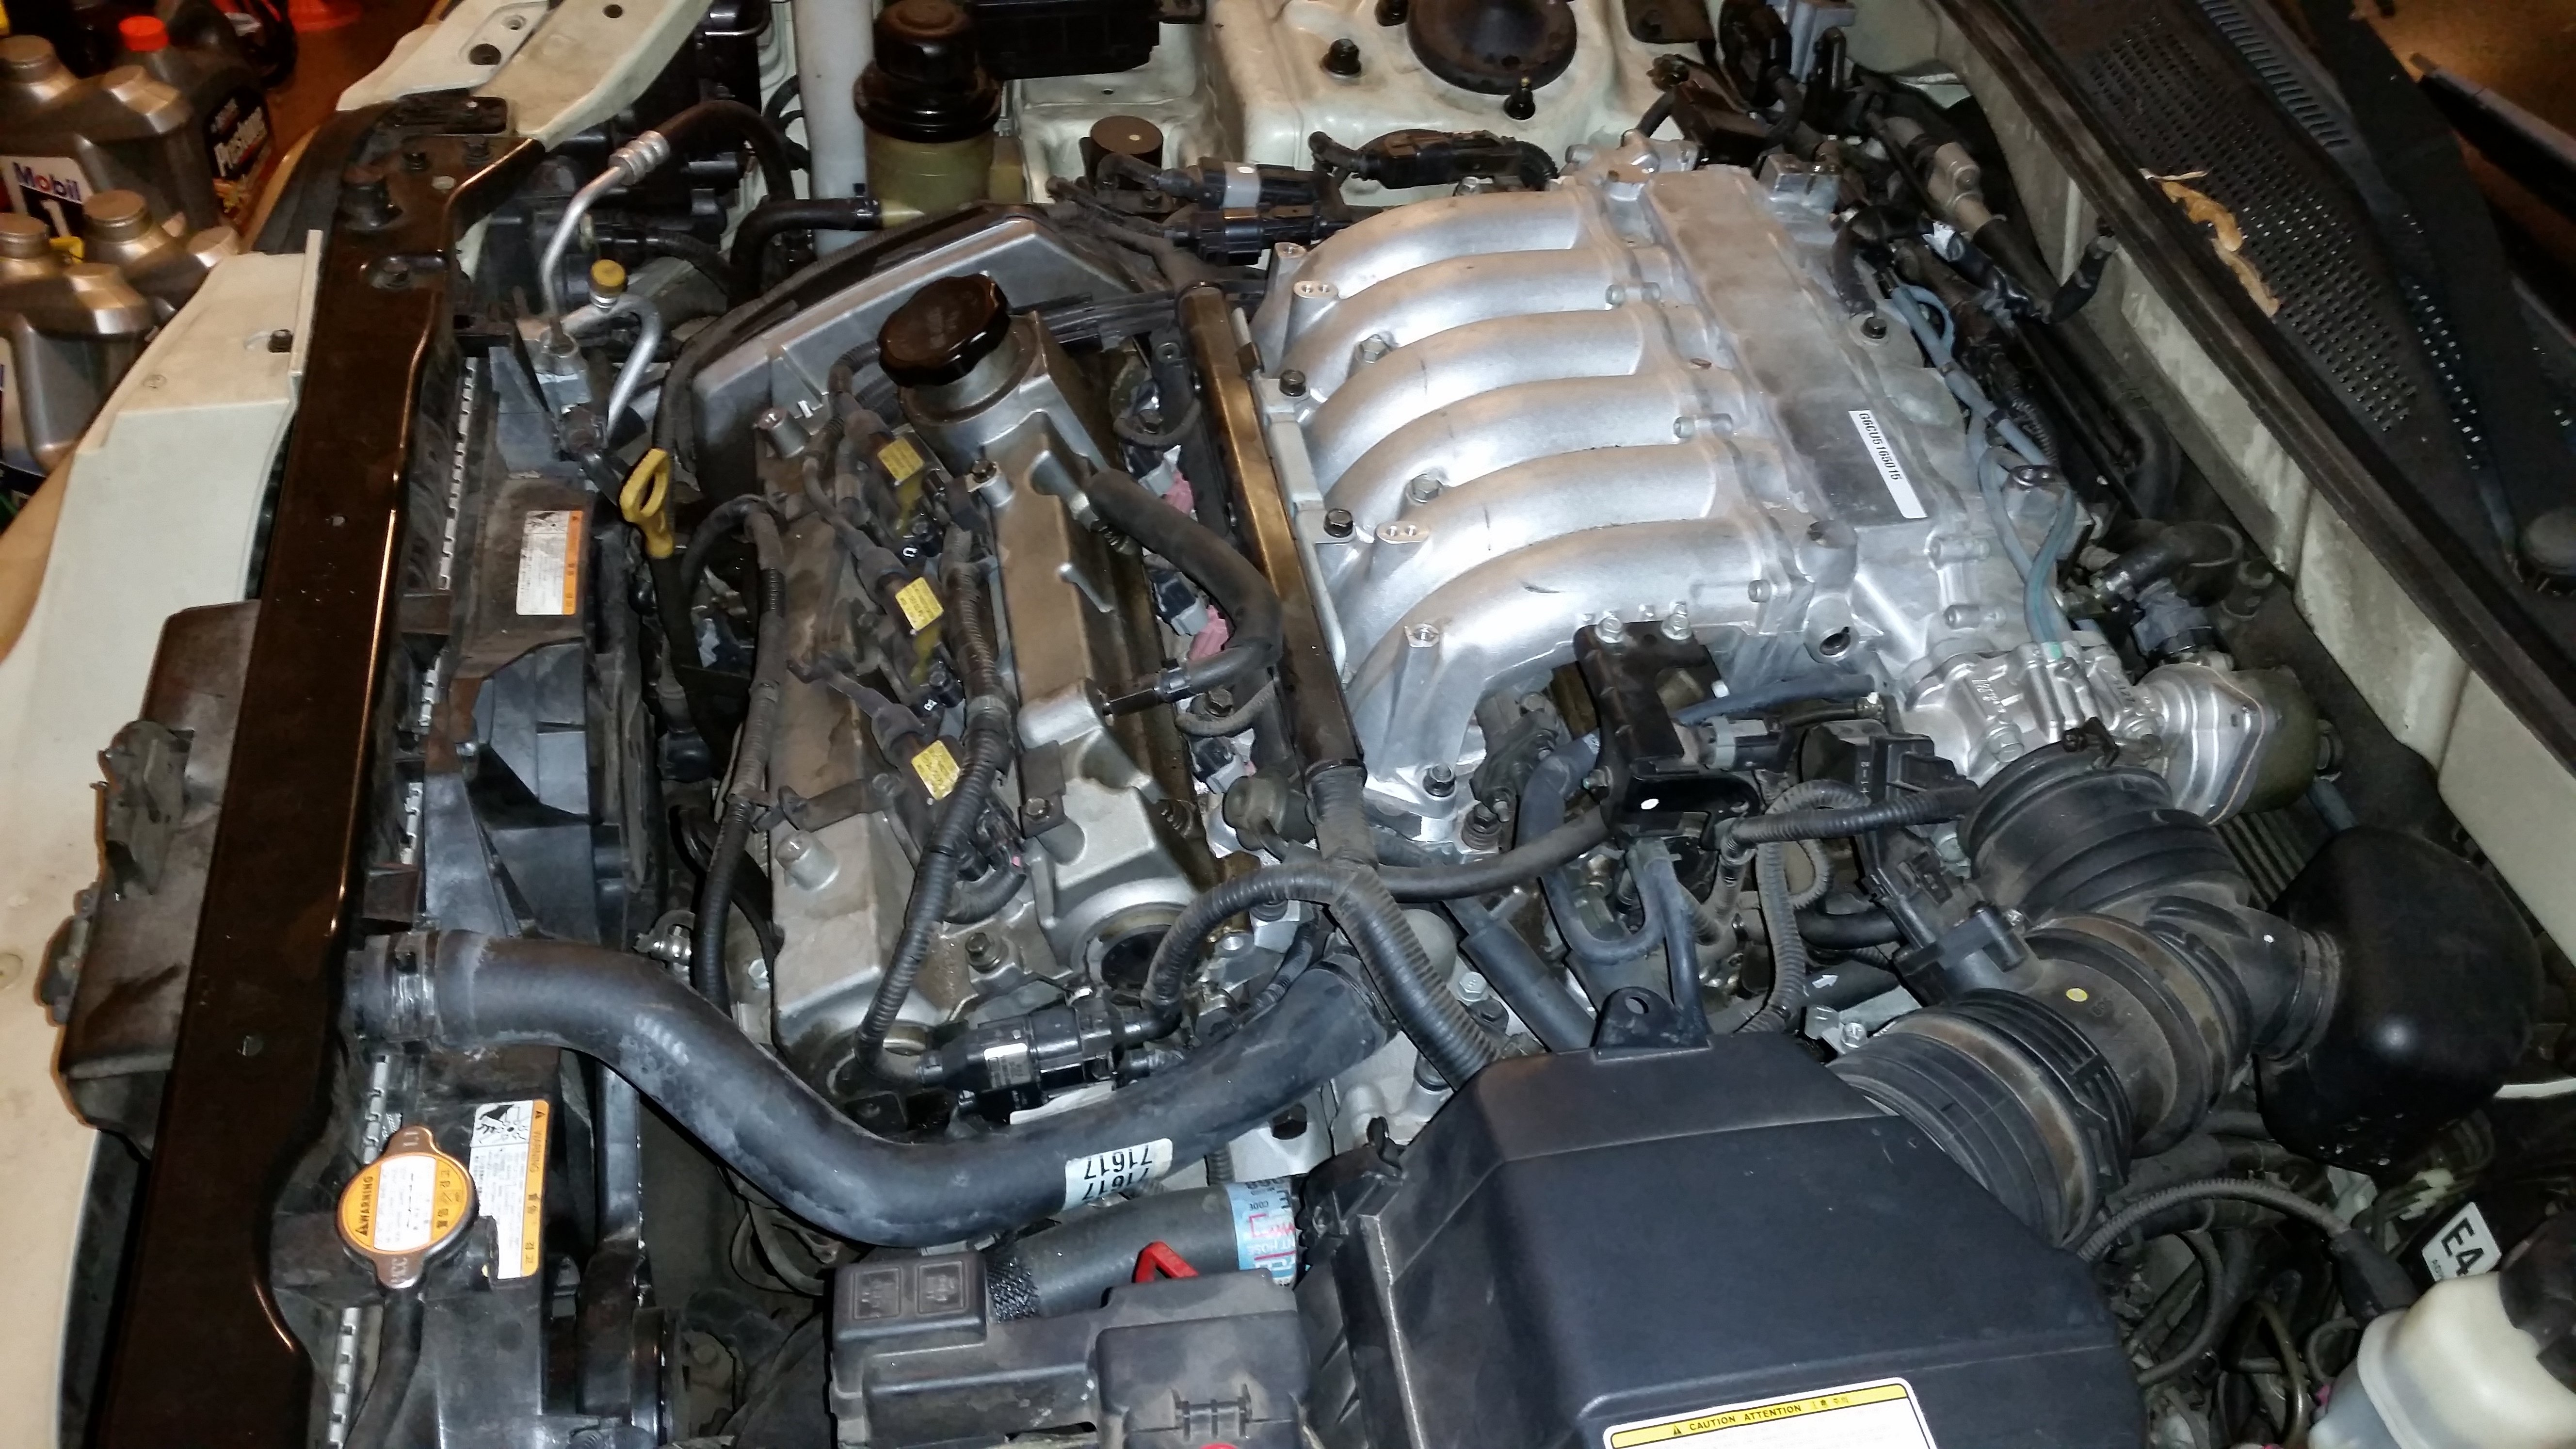 I U0026 39 M Looking For The Location Of The Pcv For A 2005 Kia